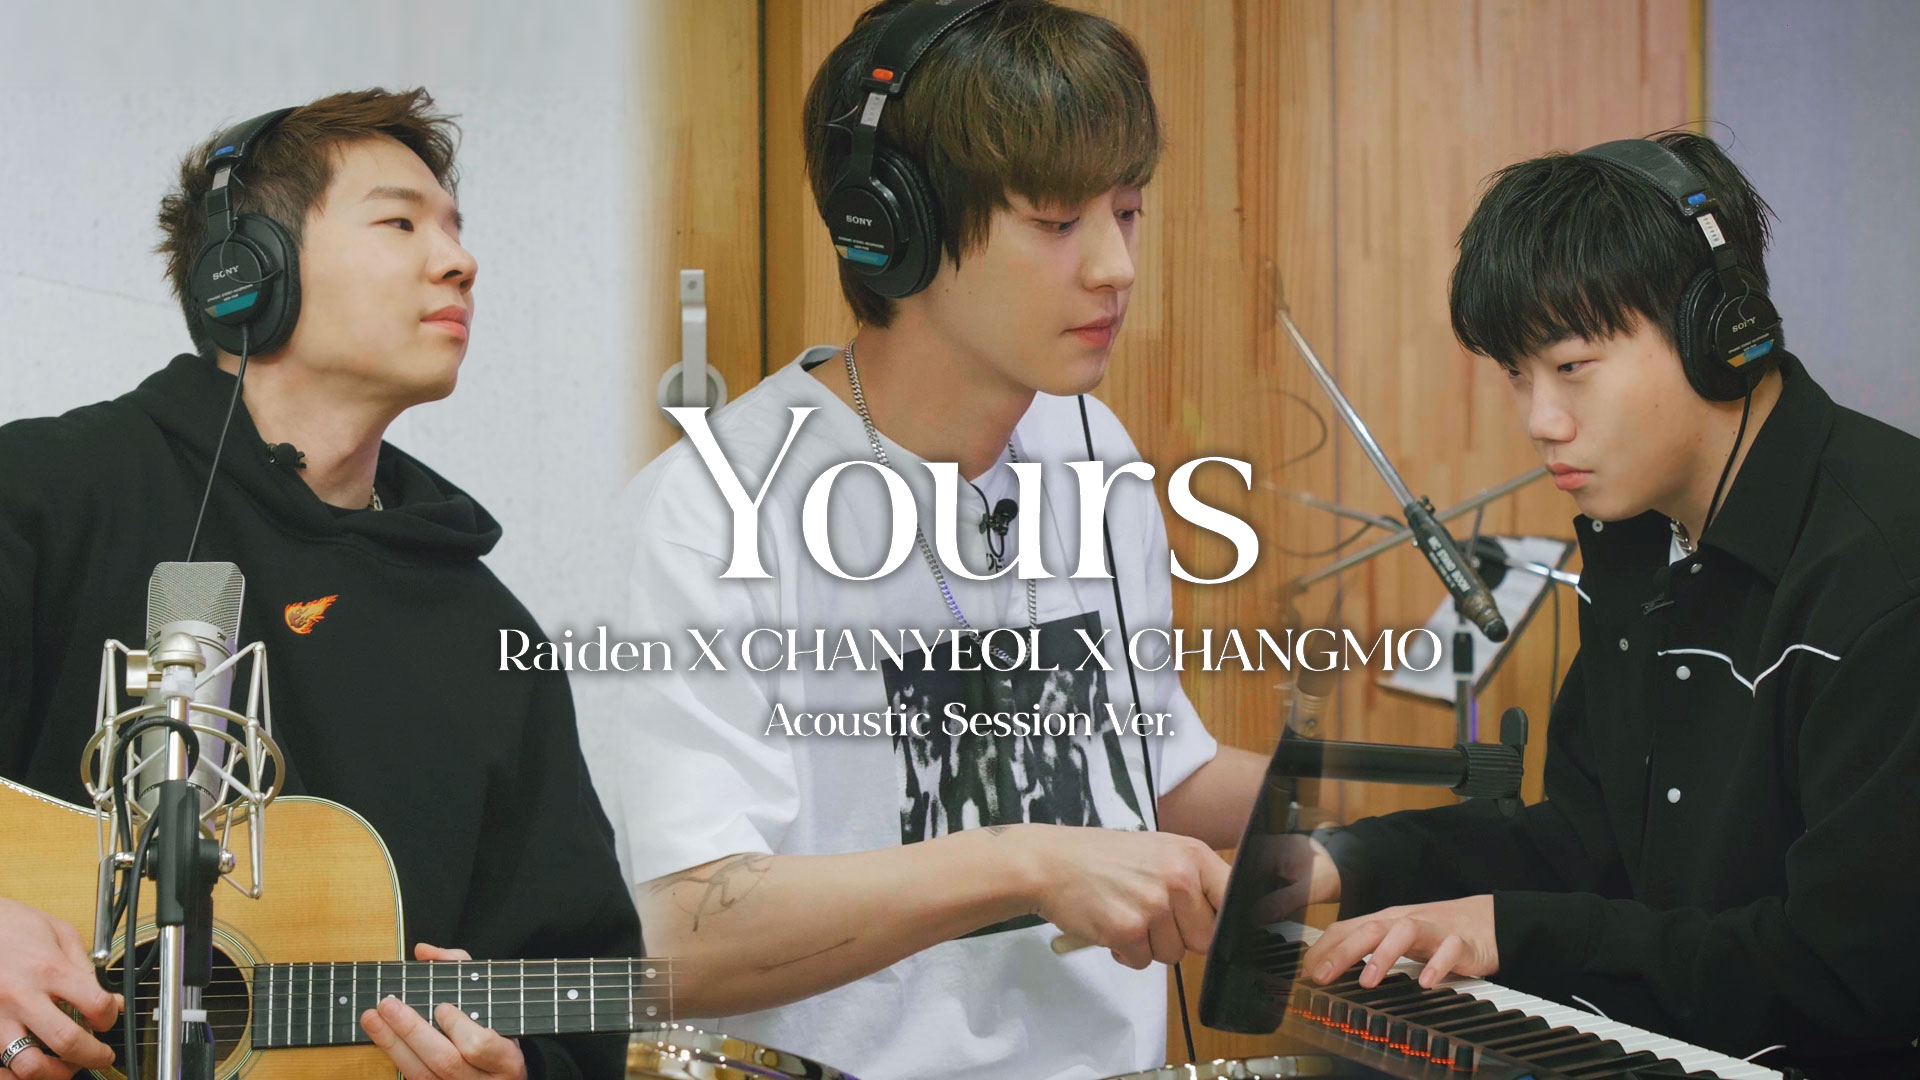 레이든X찬열X창모 'Yours' Acoustic Session Video #Raiden #CHANYEOL #CHANGMO